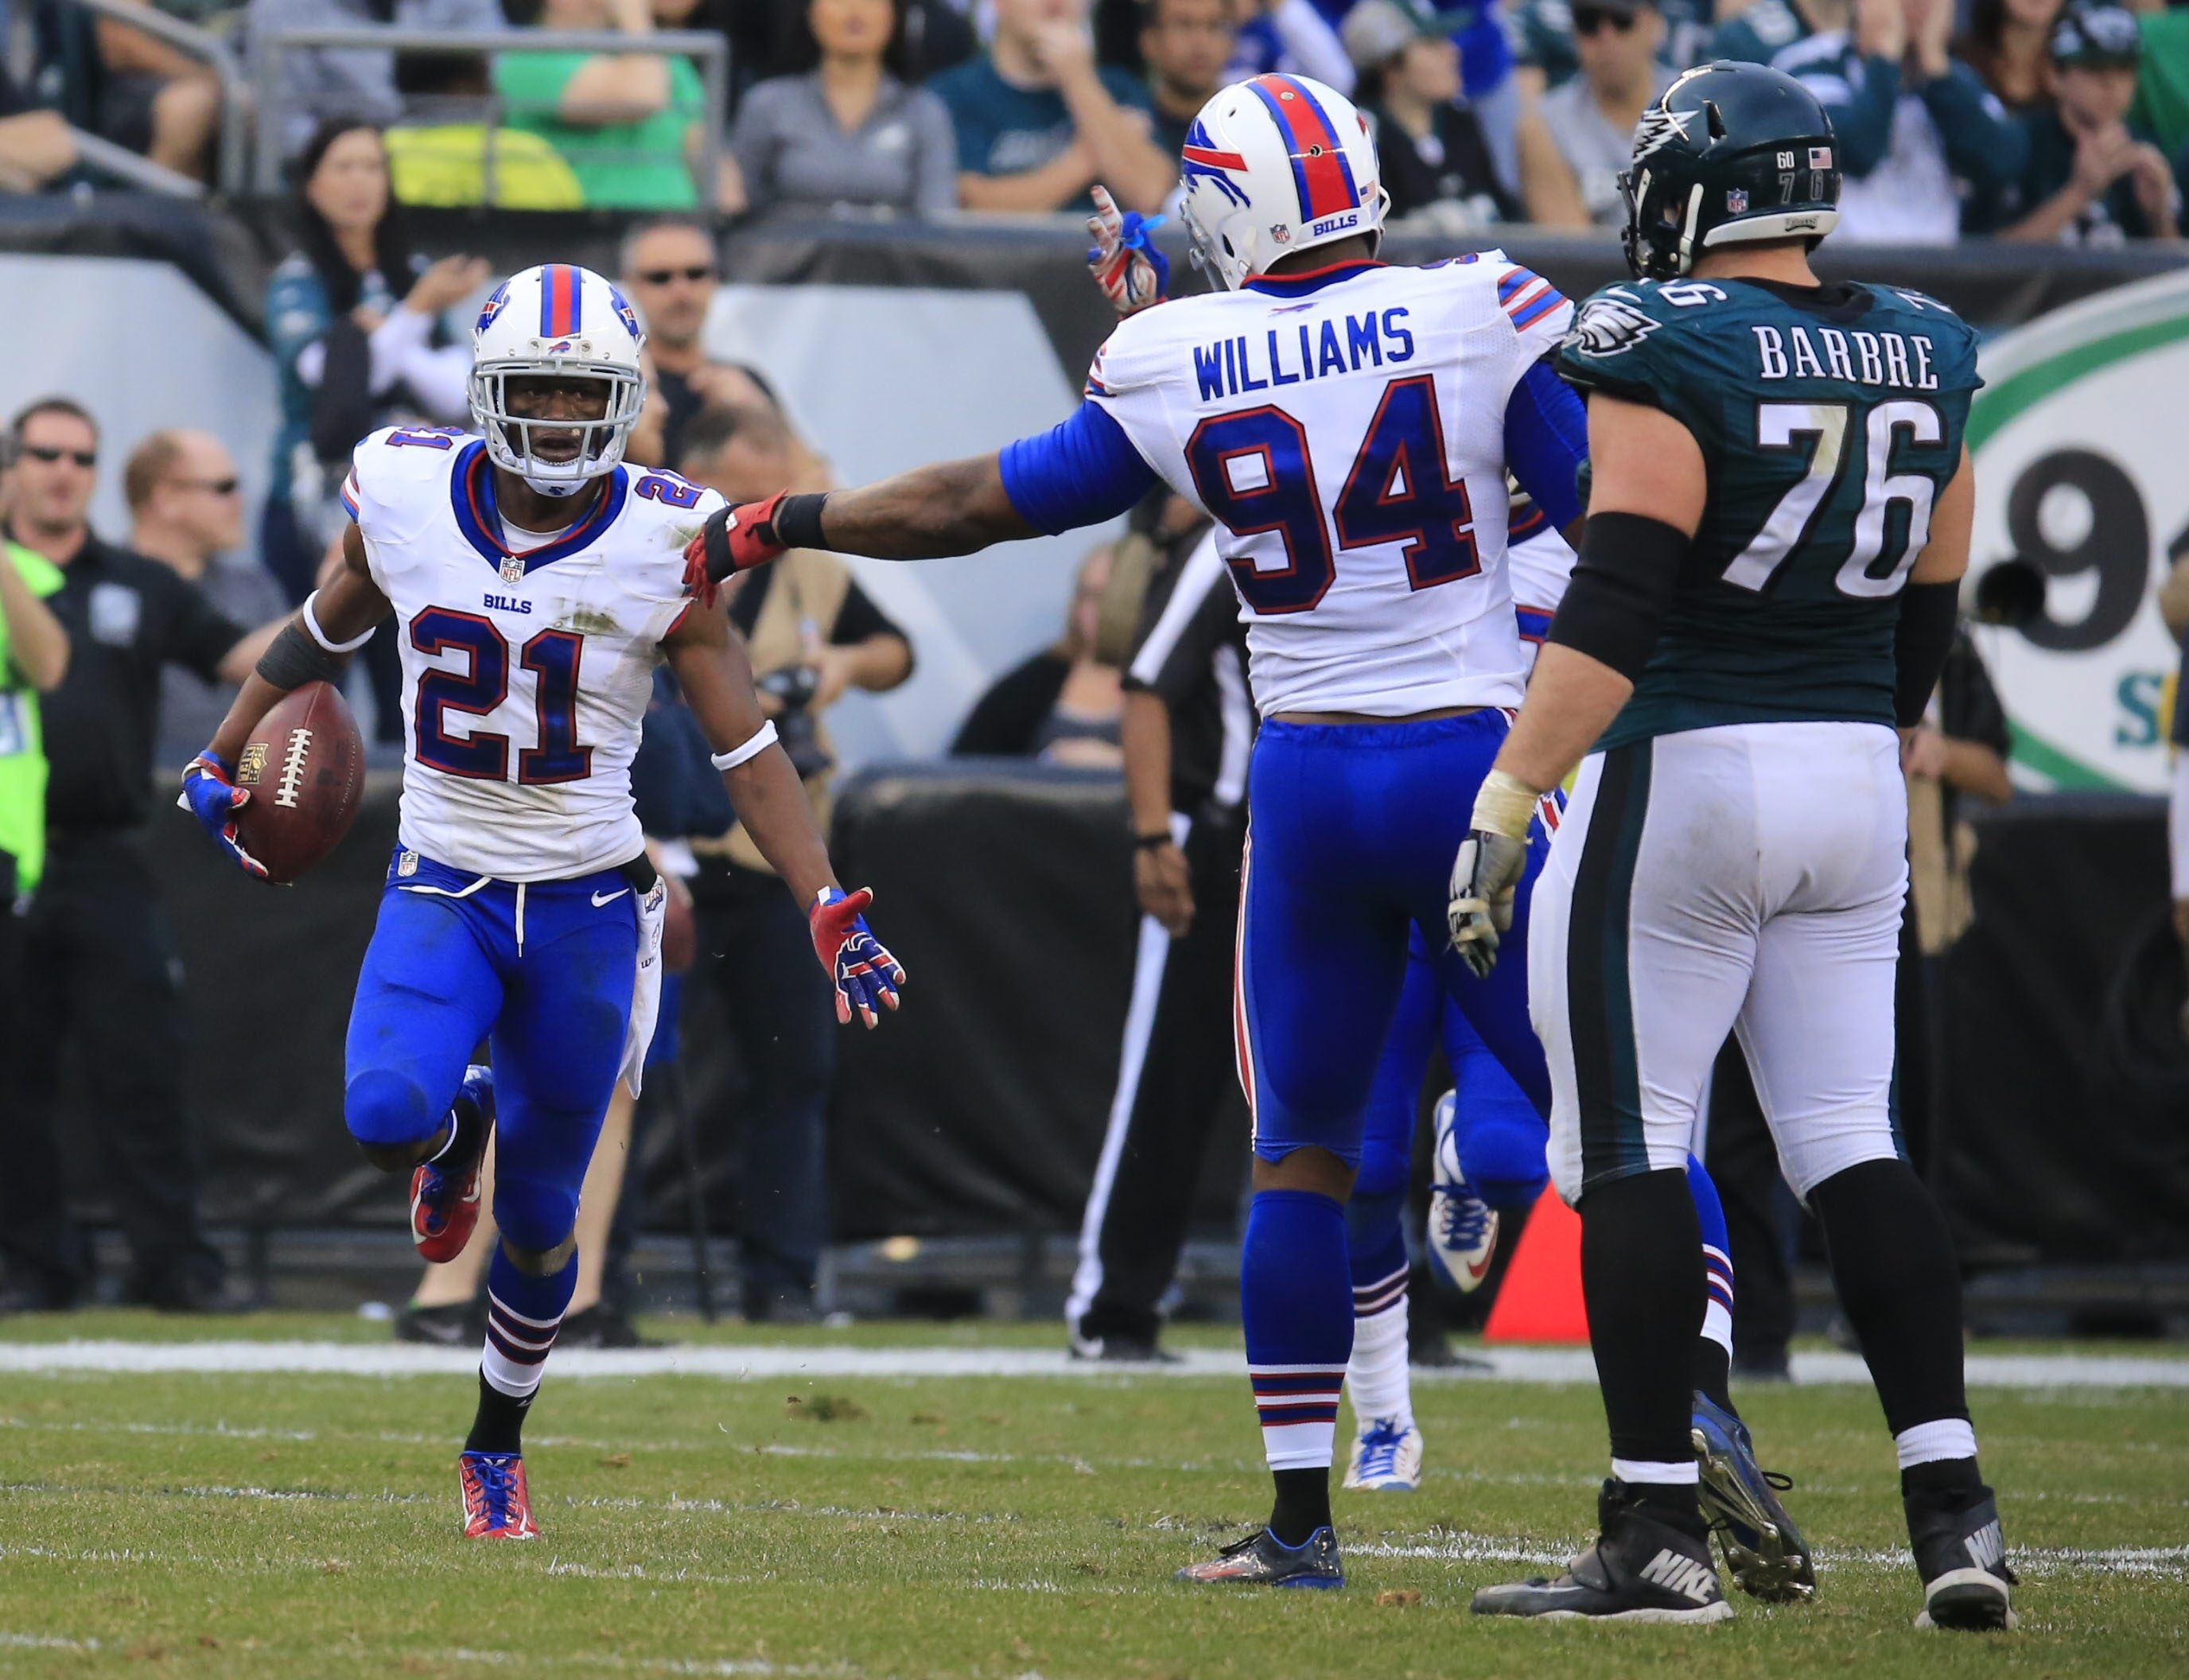 The Bills' Leodis McKelvin celebrates an interception on a ball intended for the Eagles' Brent Celek. The play was reviewed but wasn't overturned.